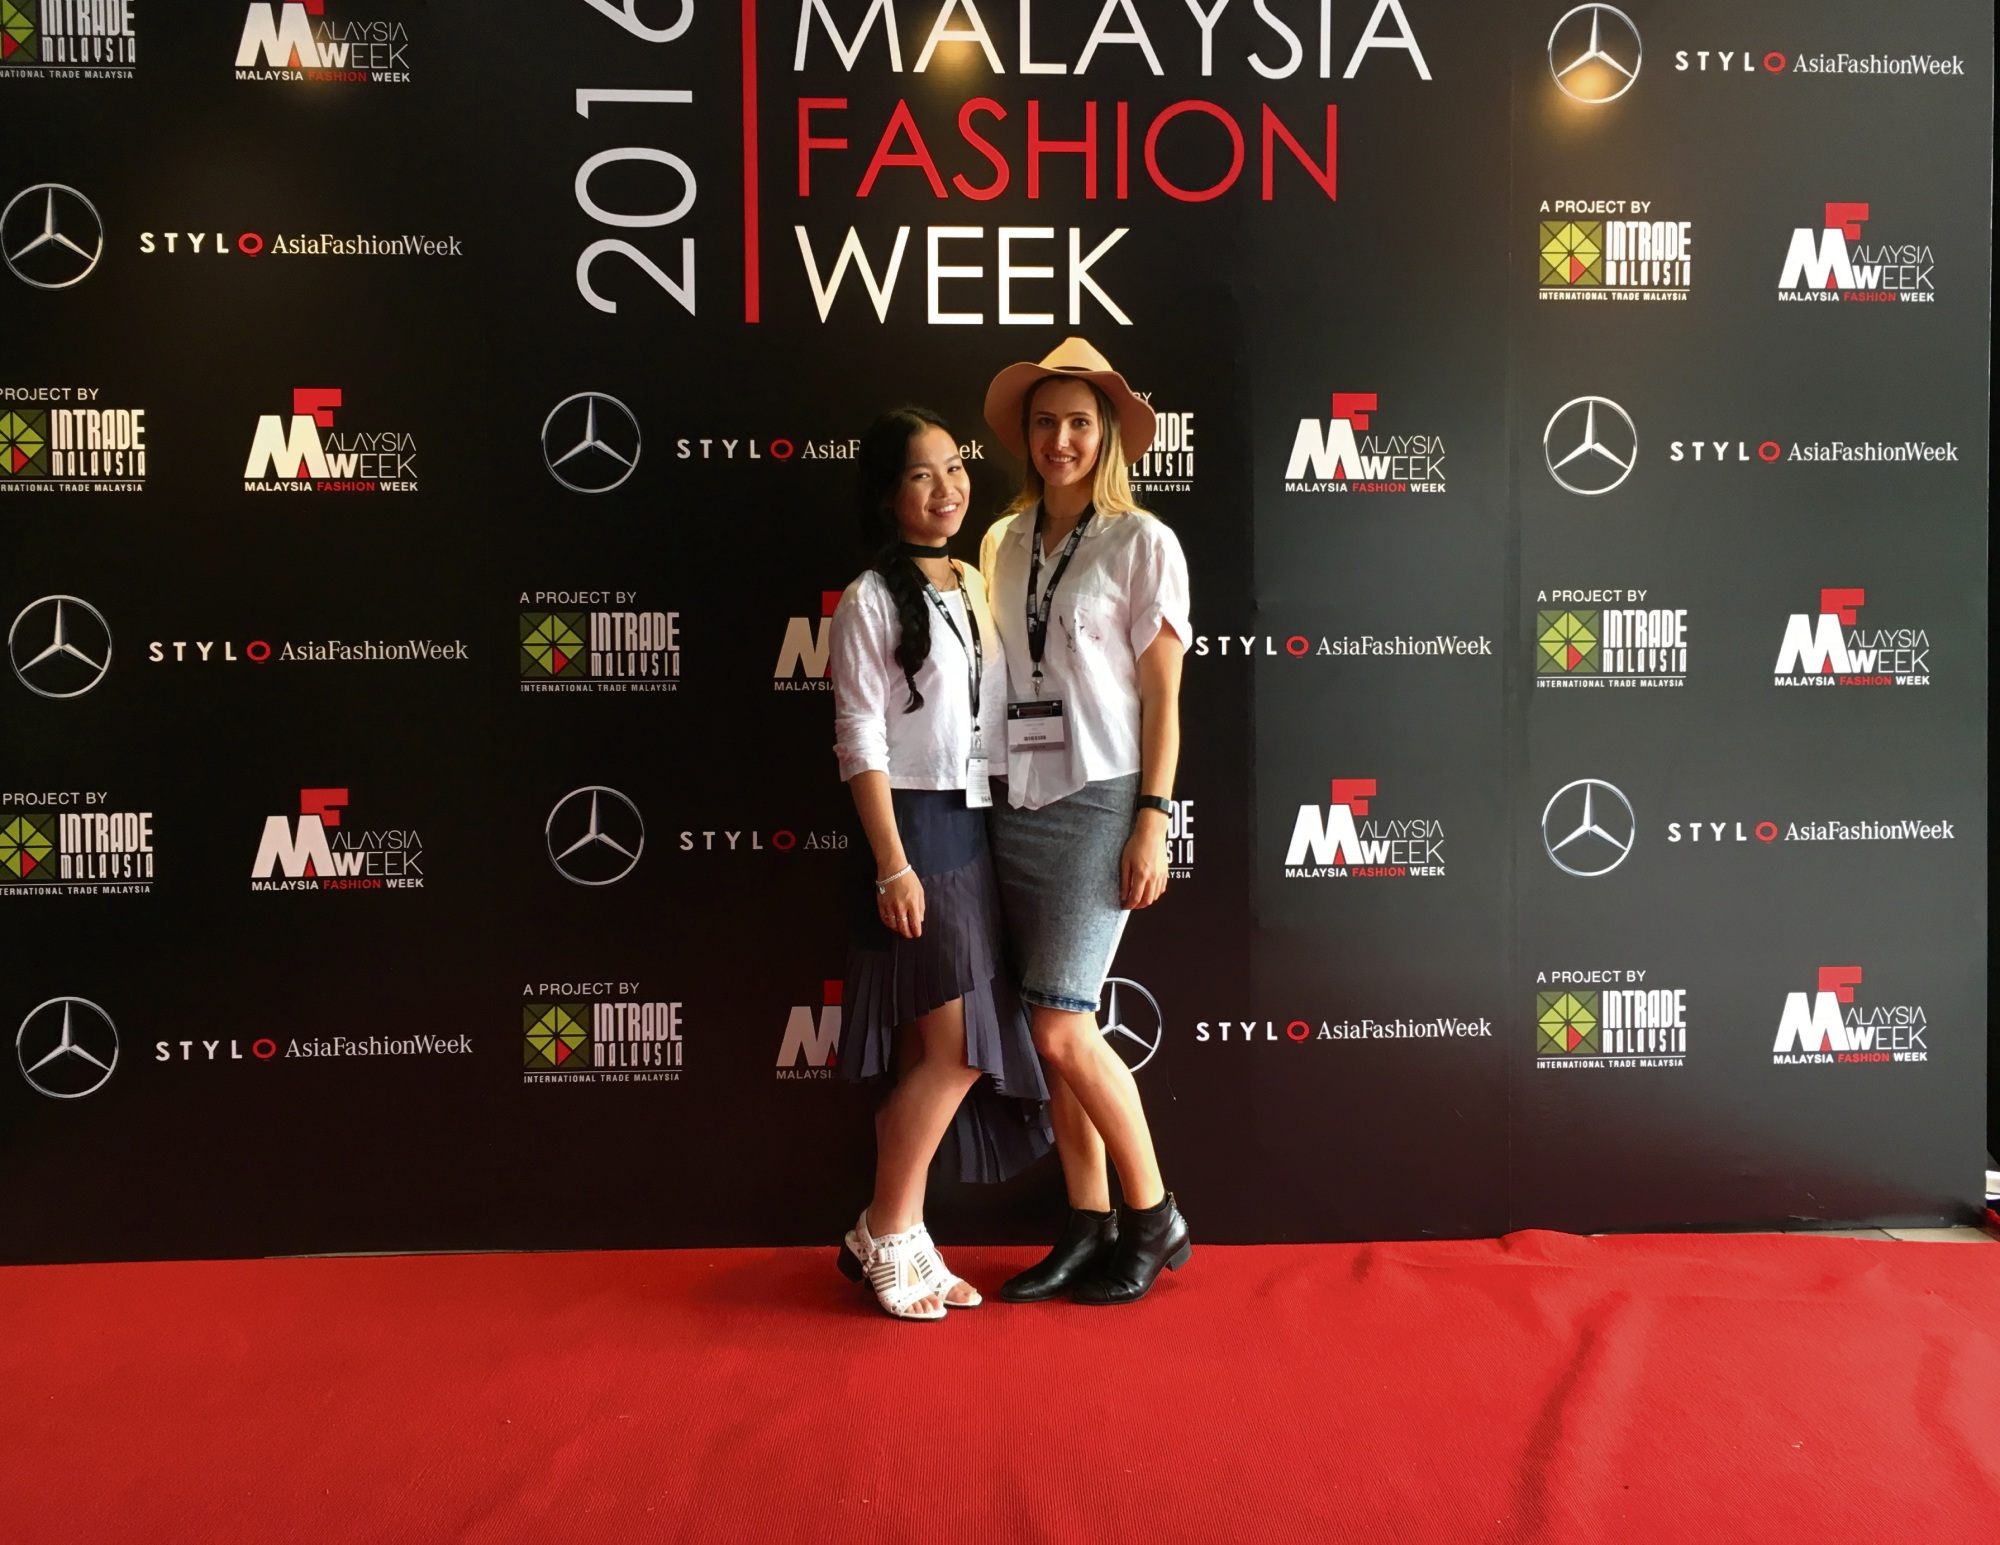 Wilson fashion design student displays wares at Asia Fashion Week